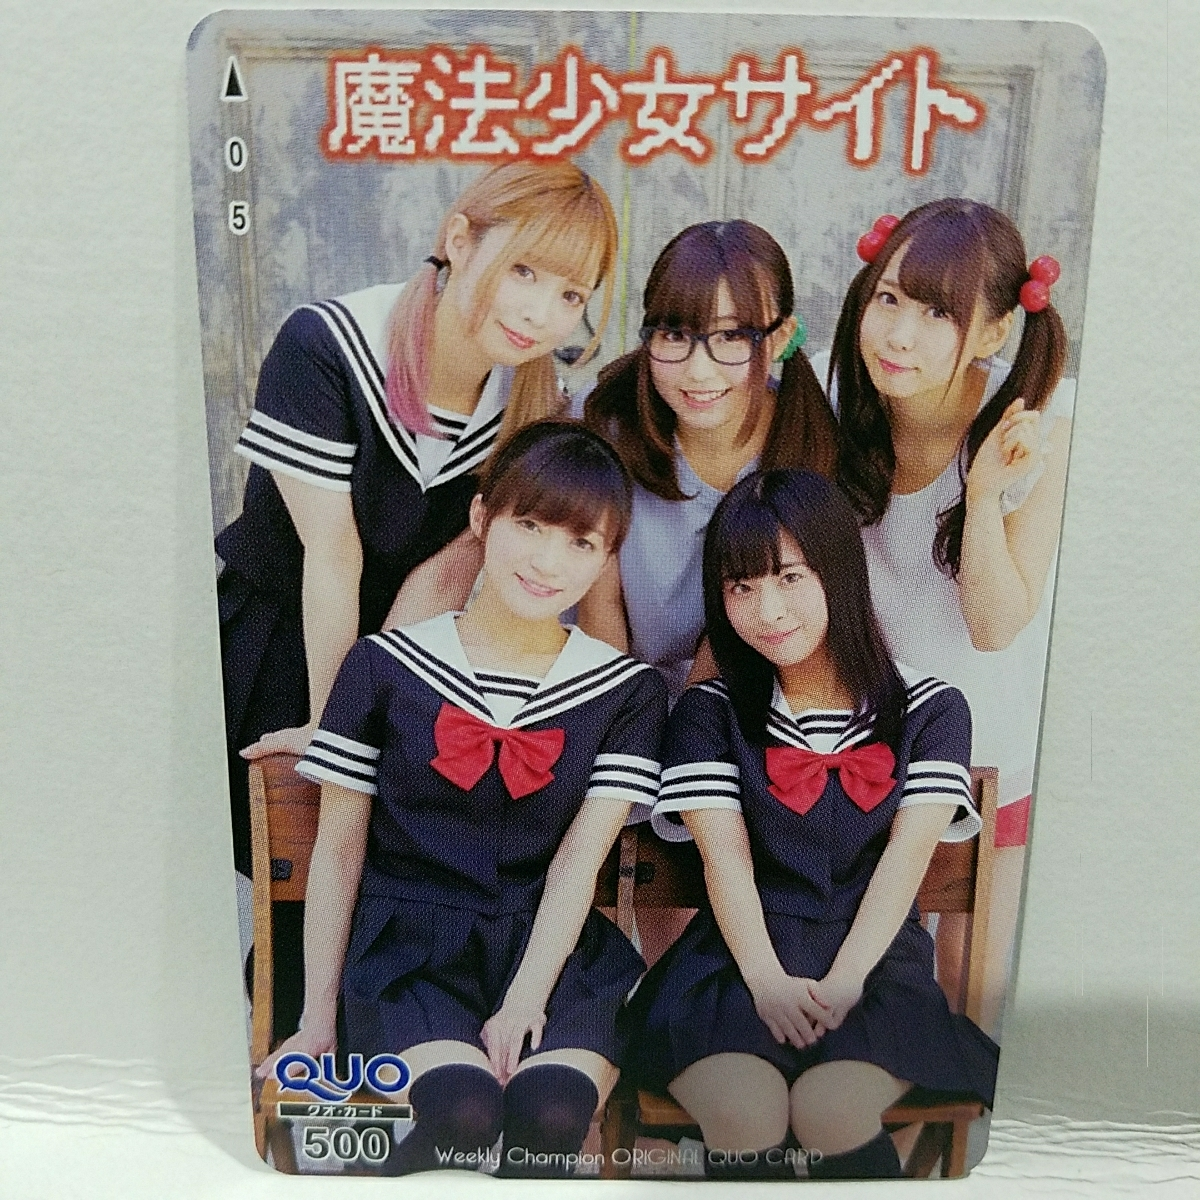 magic young lady site * QUO card ( Special made cardboard attaching ), special photo book,2 point set Shonen Champion